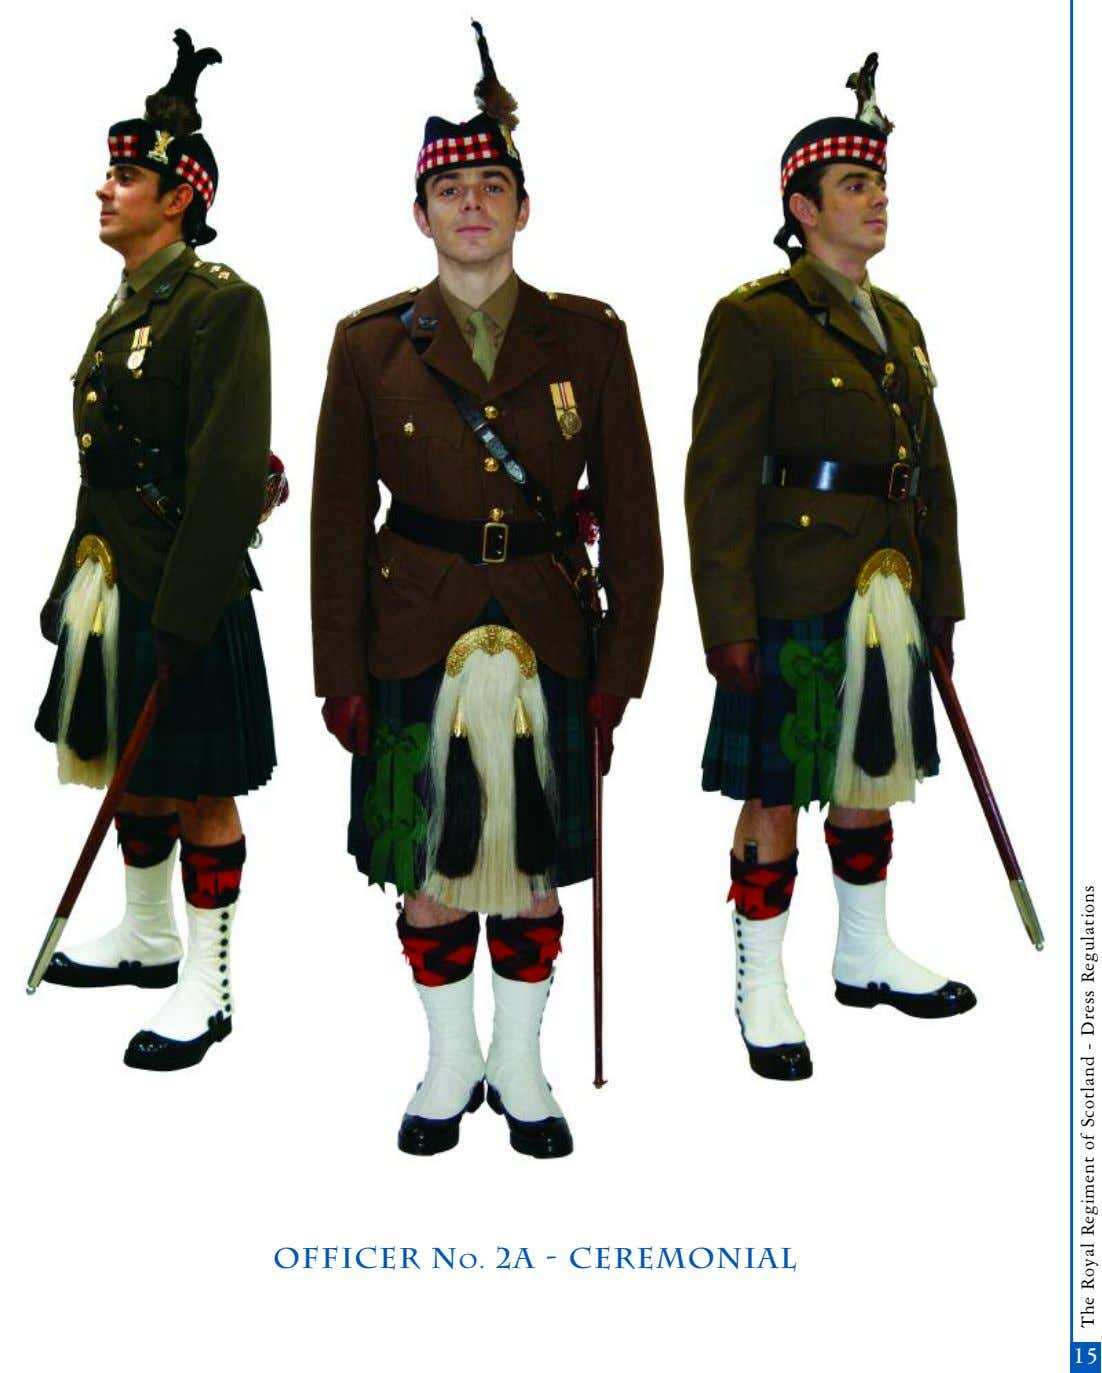 officer No. 2A - Ceremonial 13 15 The Royal Regiment of Scotland - Dress Regulations